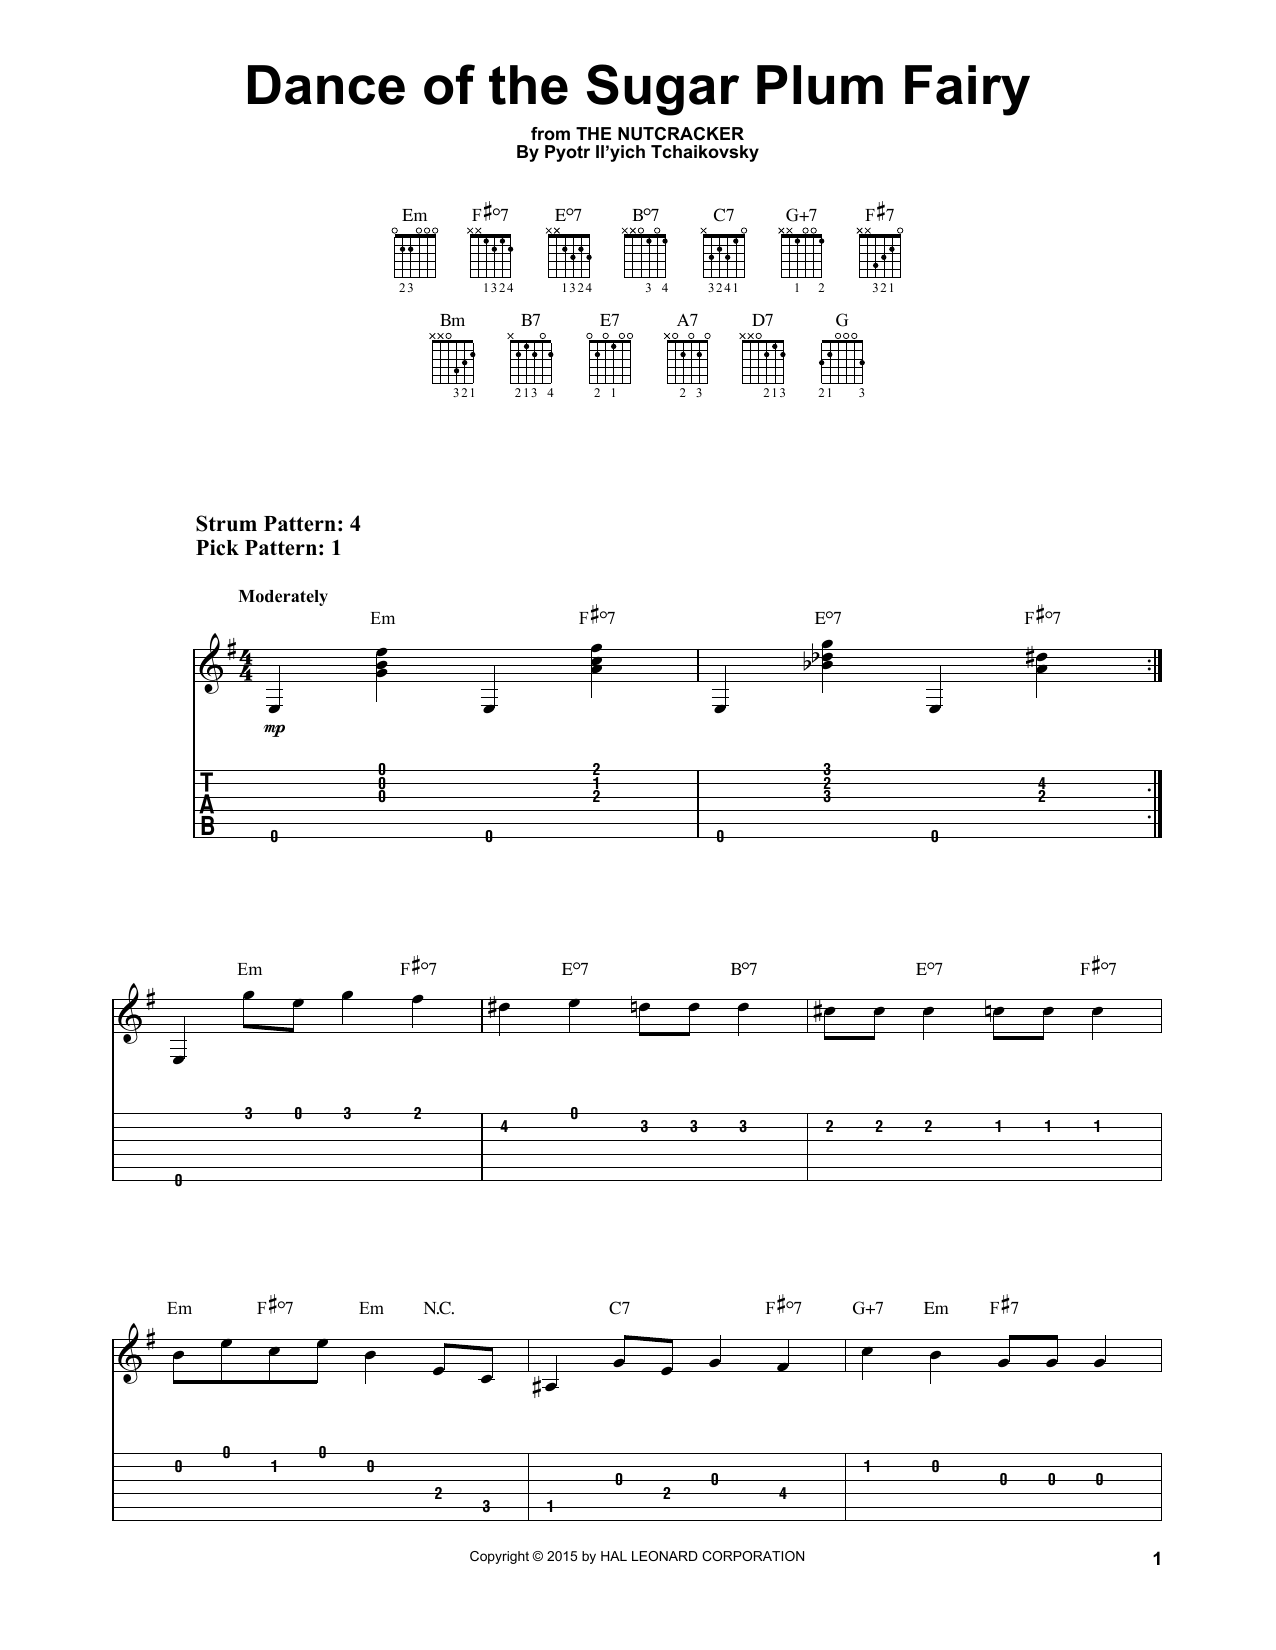 Pyotr Il'yich Tchaikovsky Dance Of The Sugar Plum Fairy, Op. 71a sheet music notes and chords. Download Printable PDF.